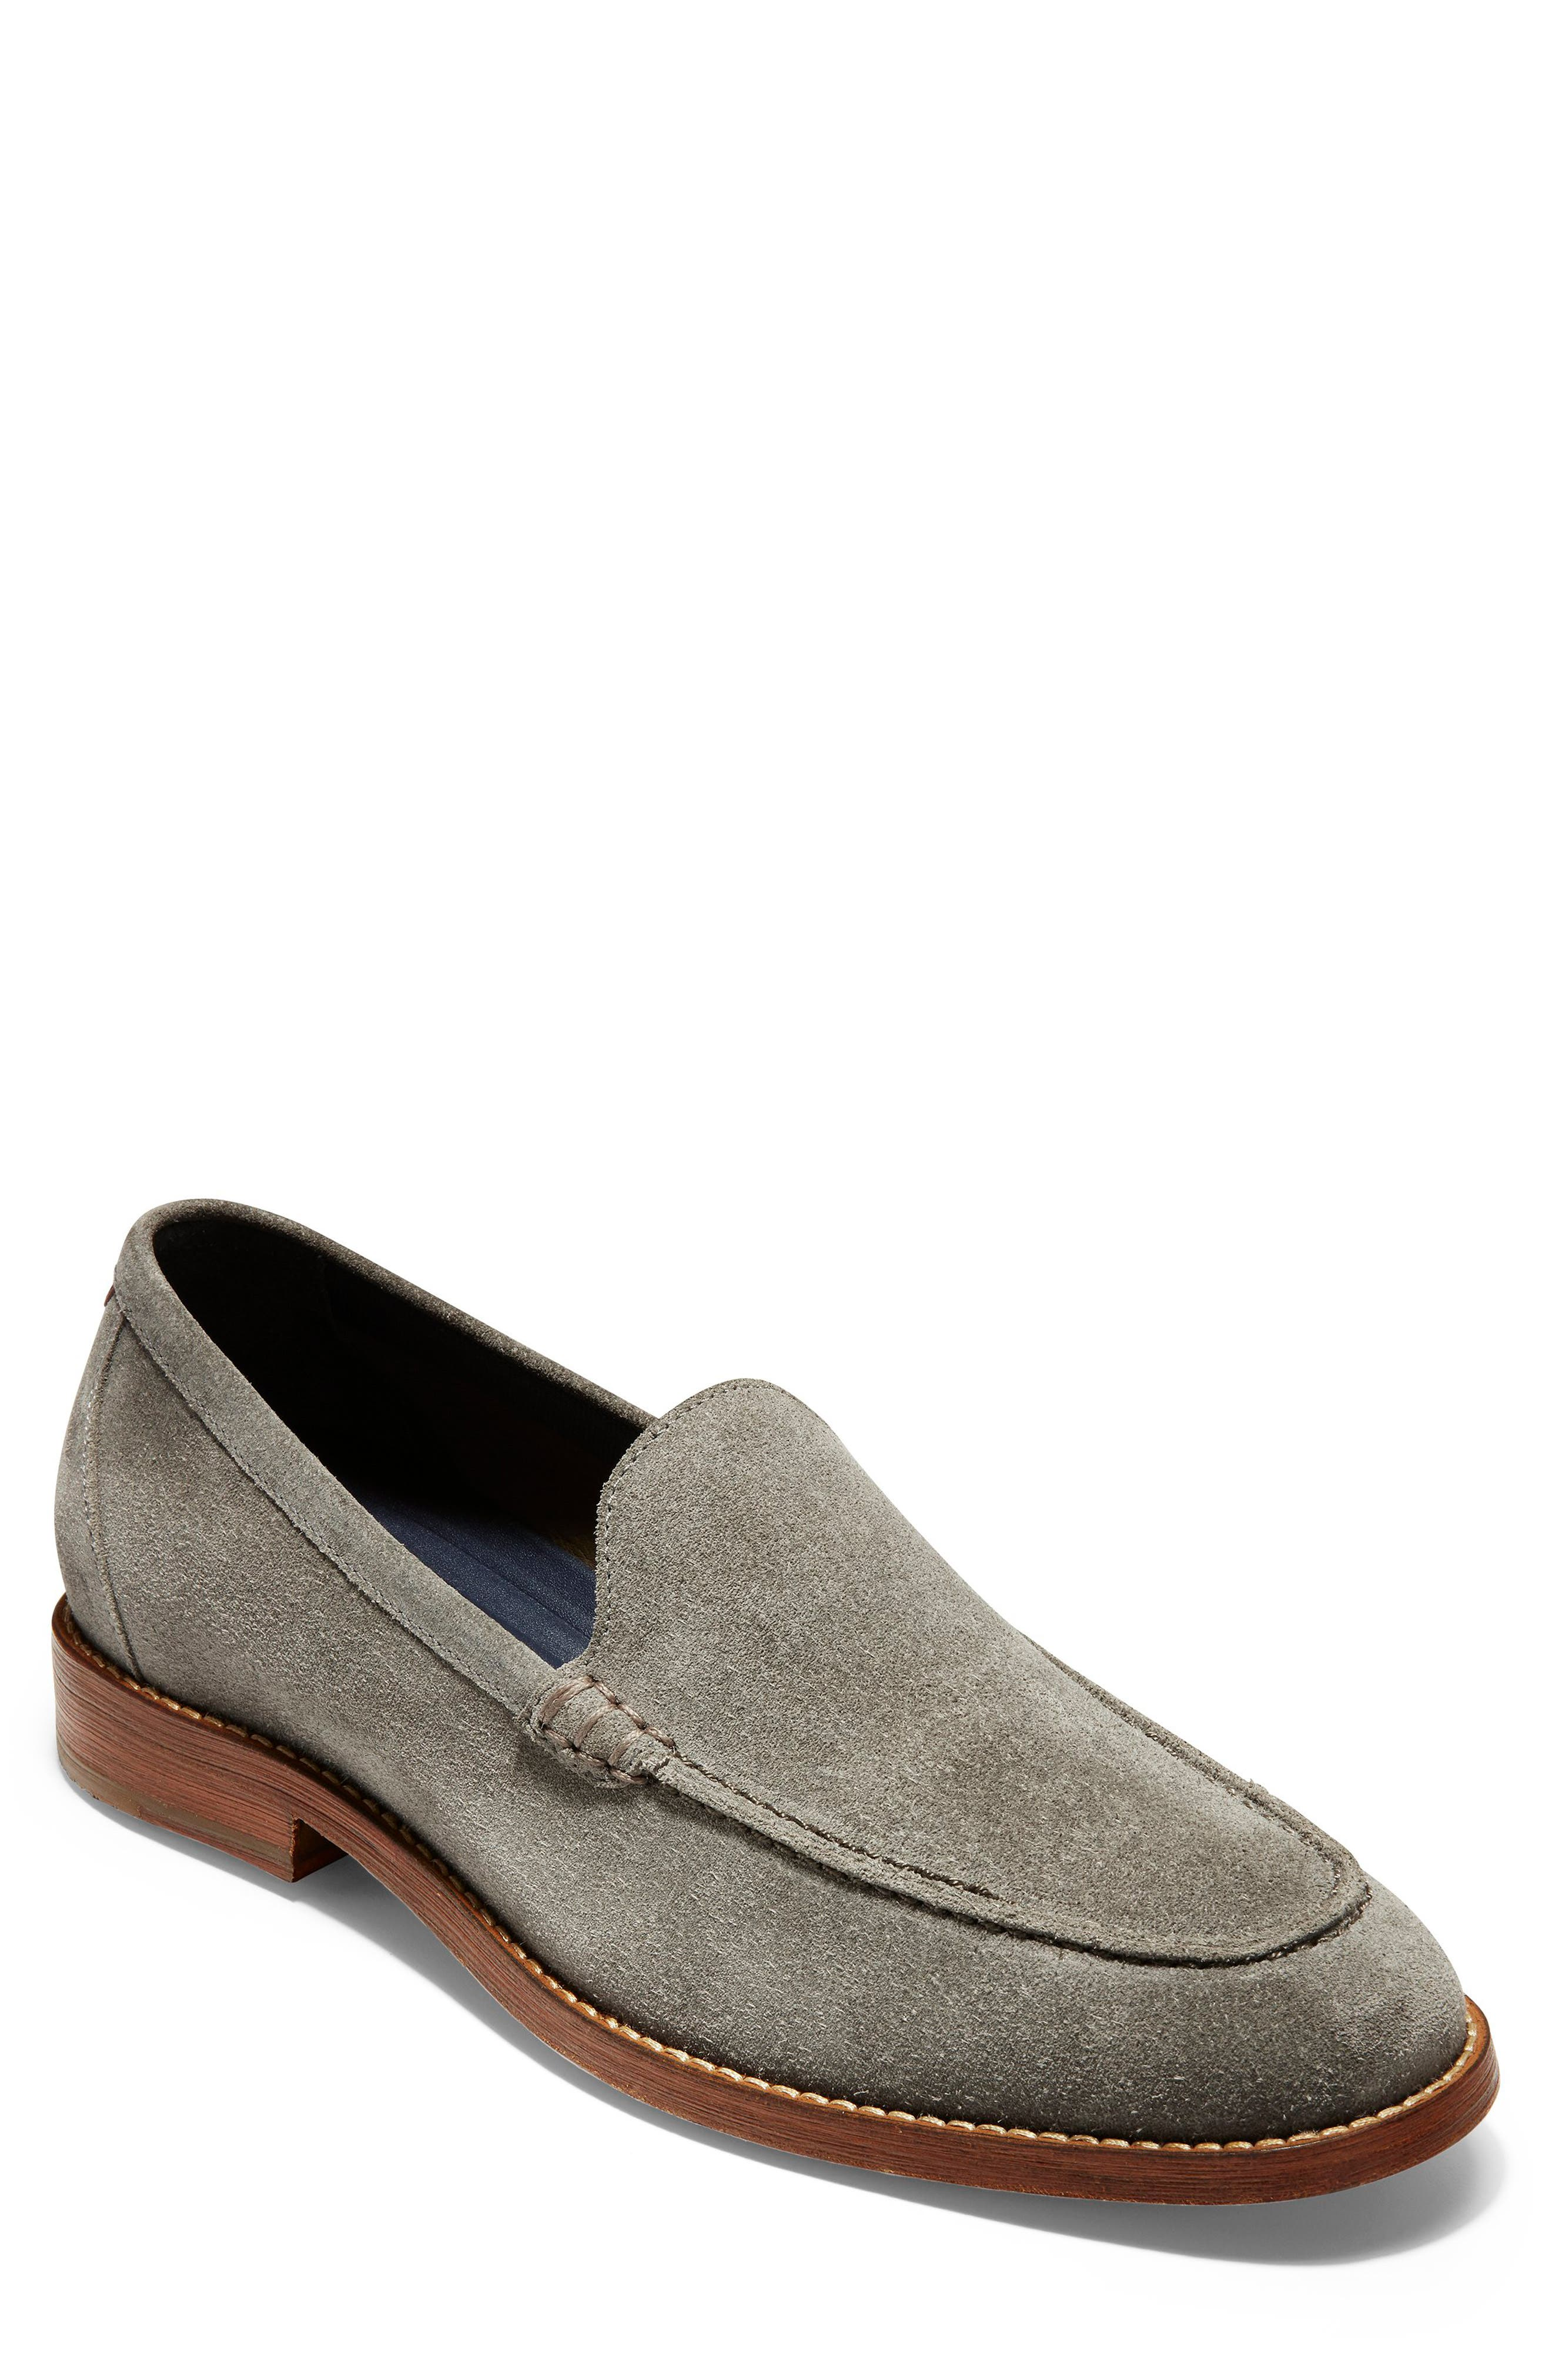 Cole Haan Feathercraft Grand Venetian Loafer, Grey